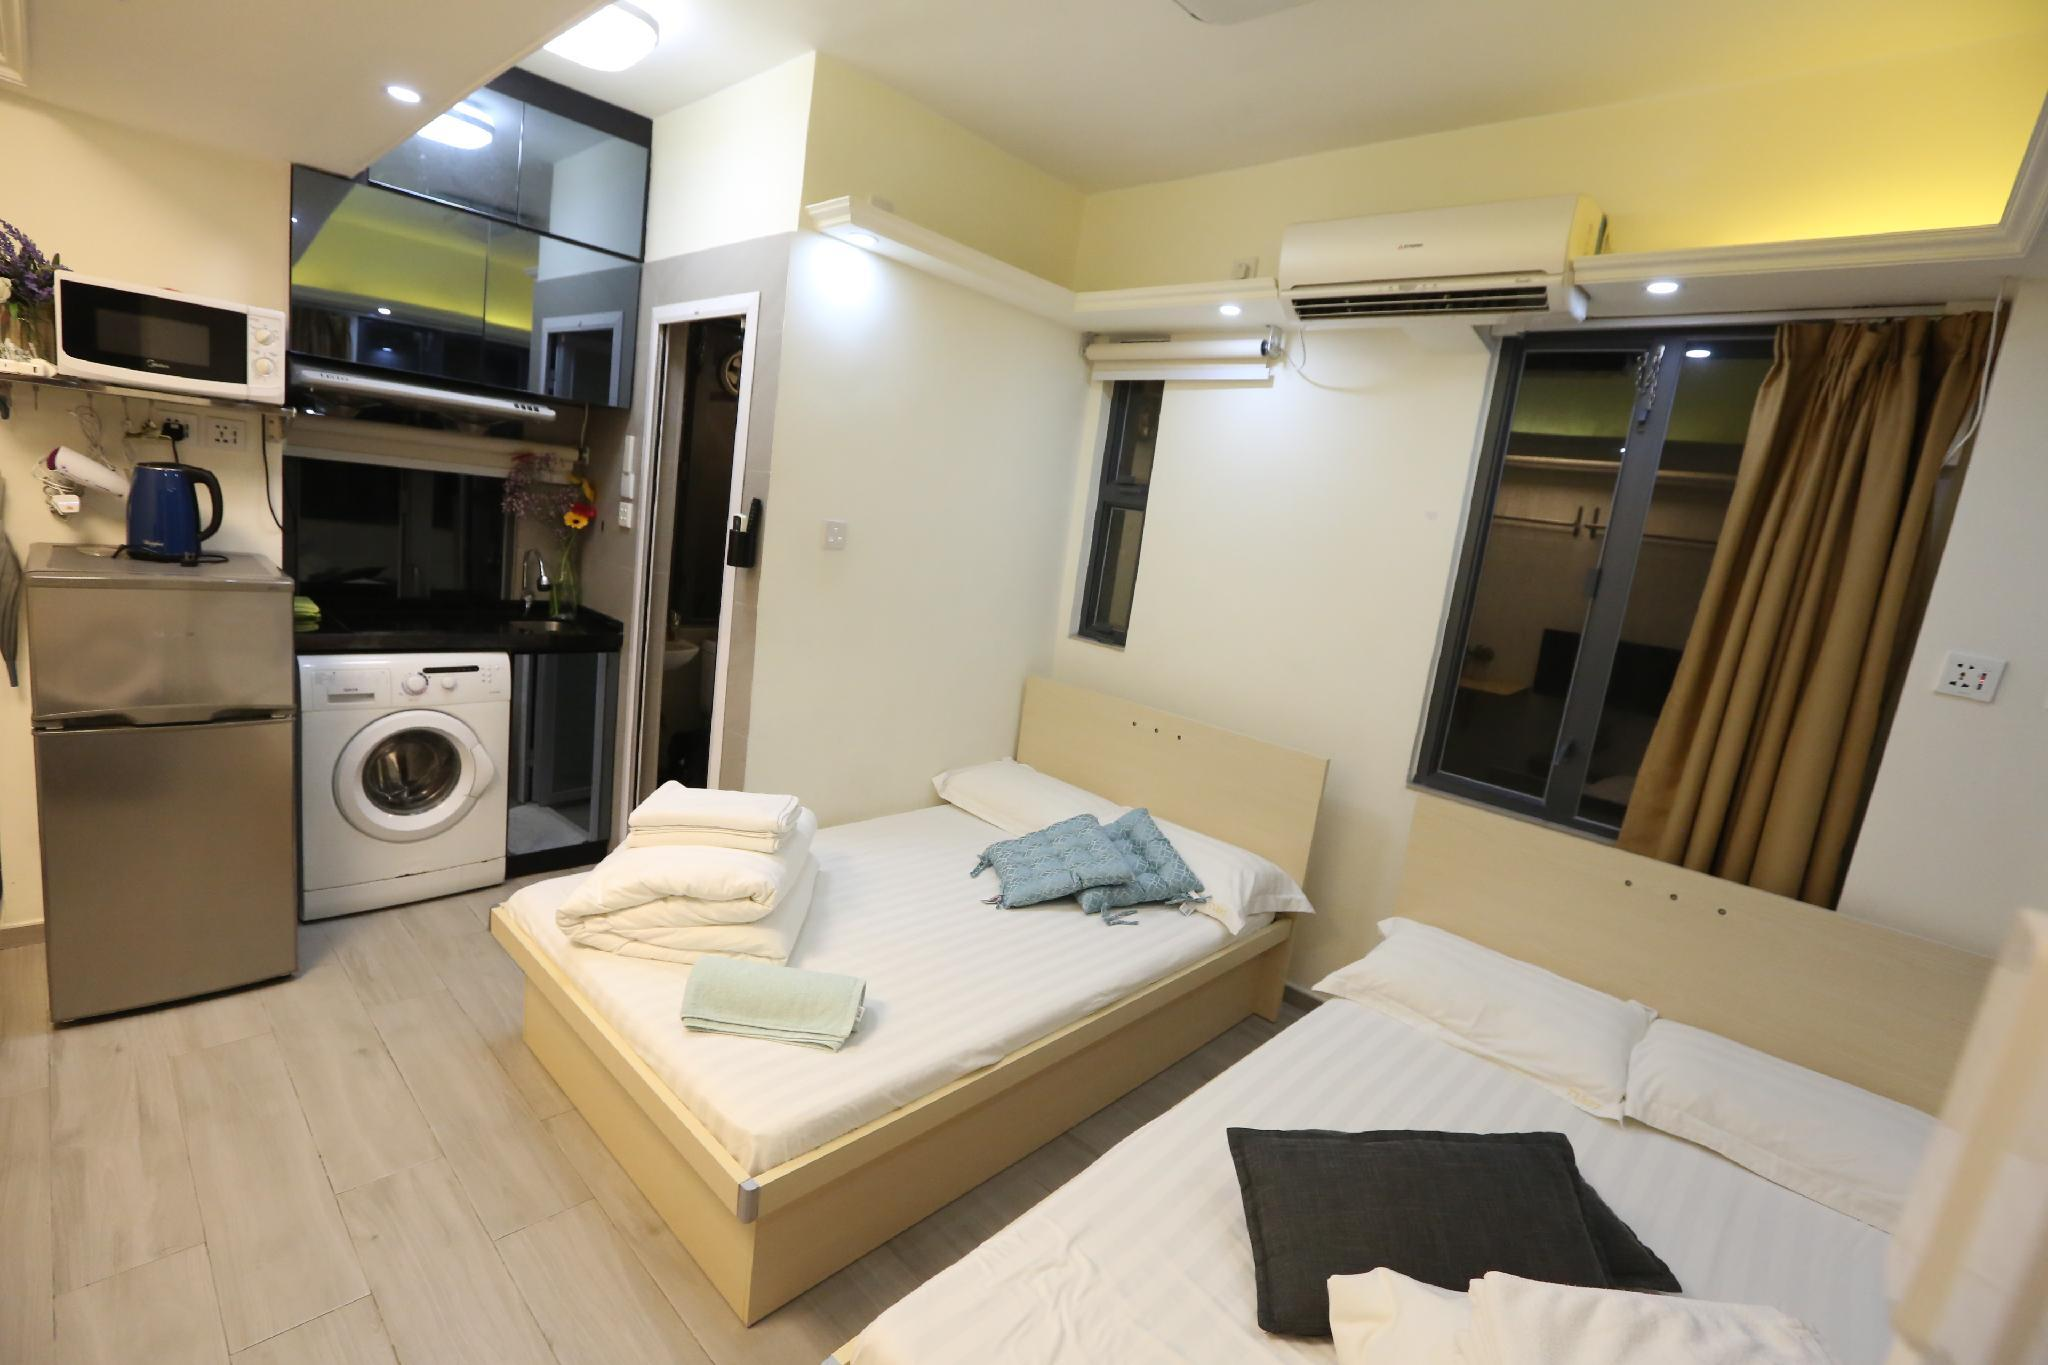 T 7 B   Warmly Apartment With Open Areas